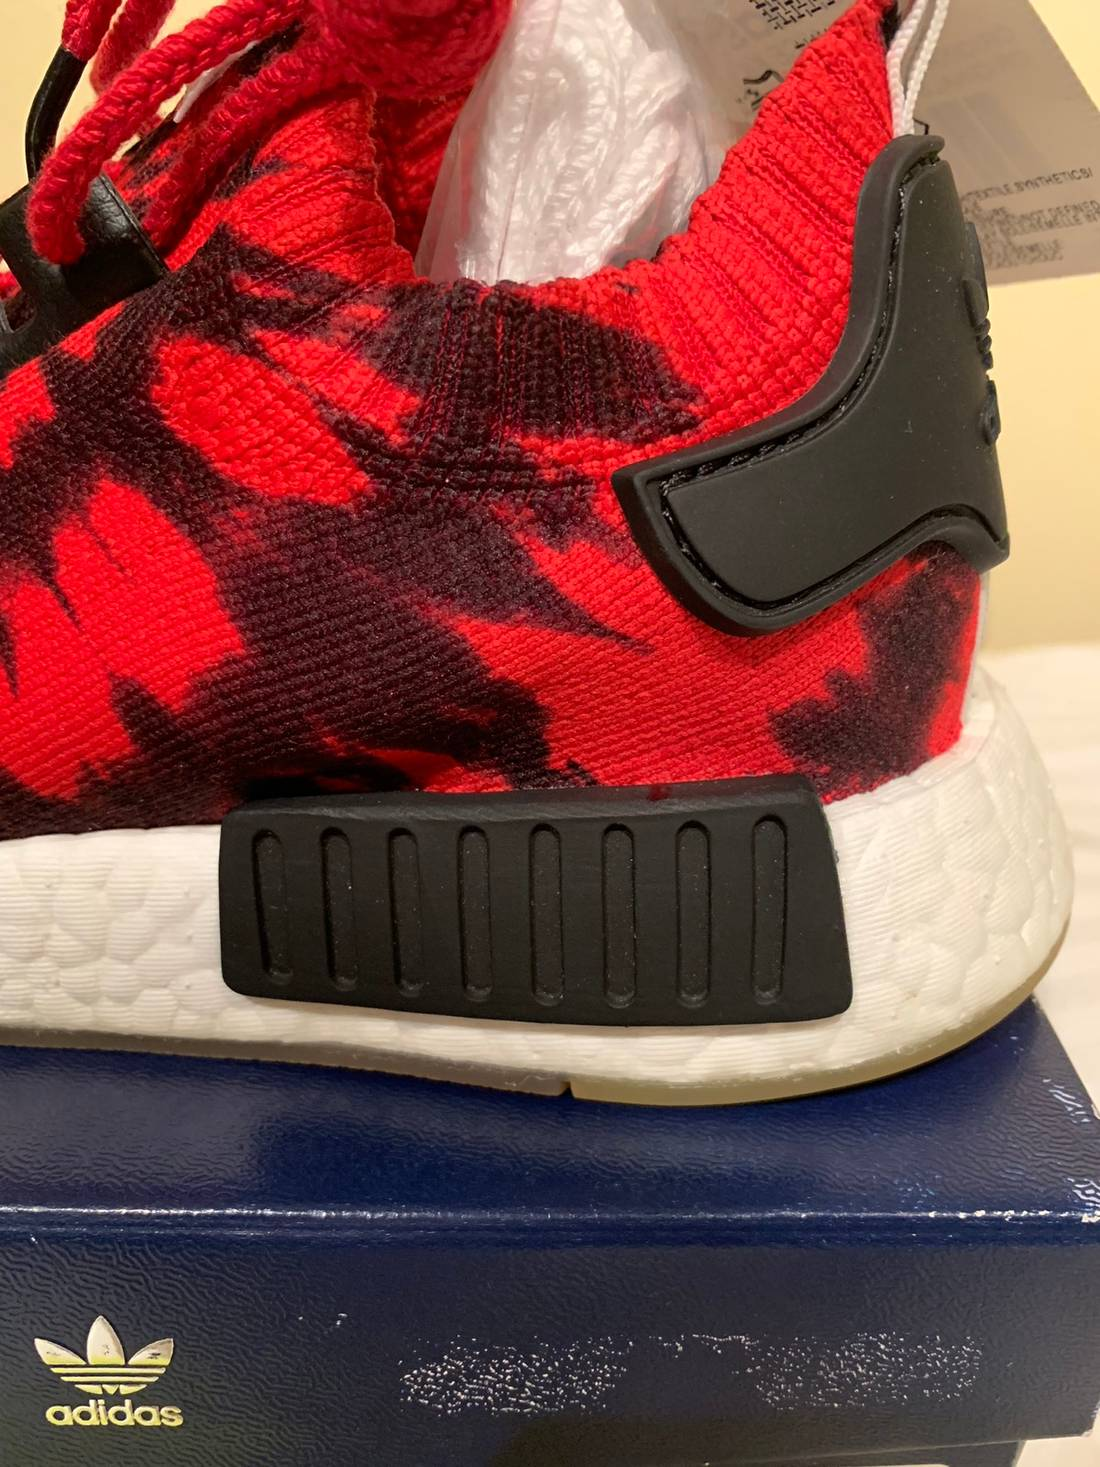 adidas nice kicks nmds size 7 low top sneakers for sale grailed